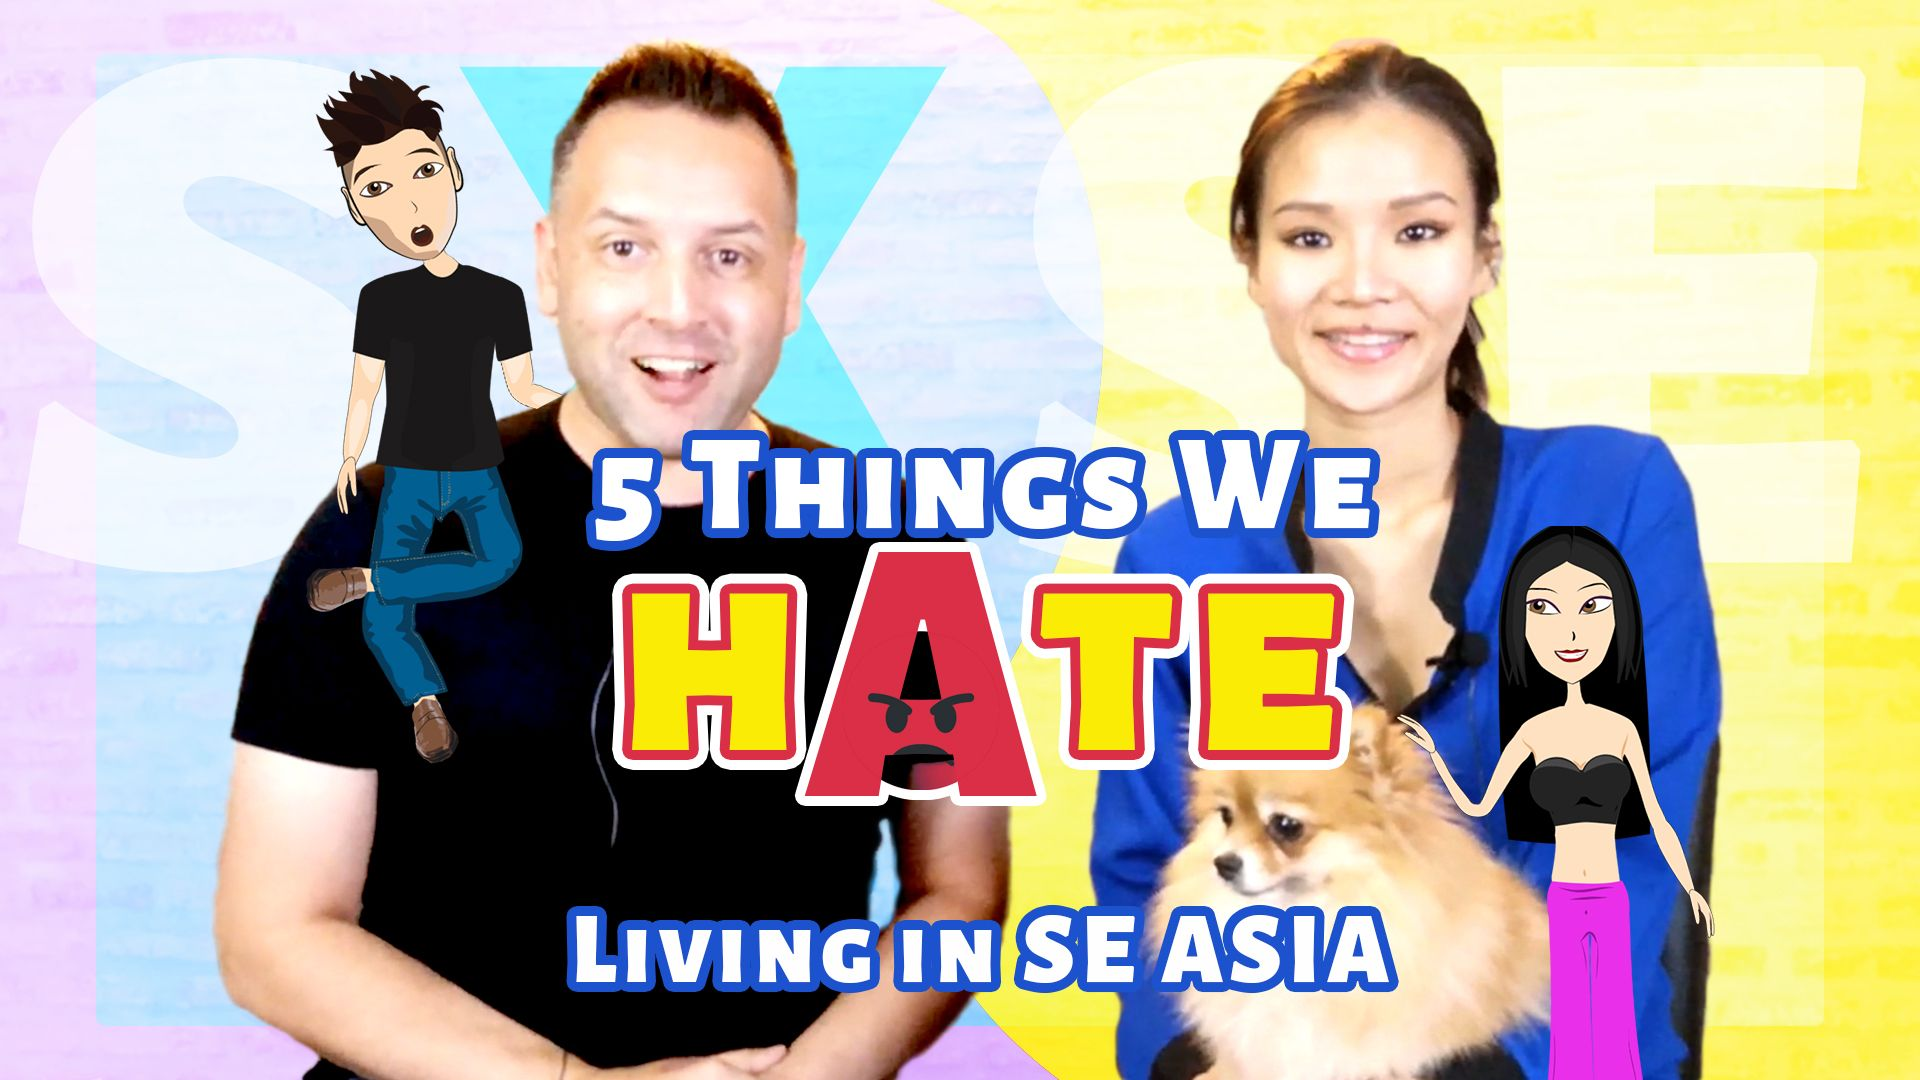 5 Things I H̶a̶t̶e̶ Strongly Dislike About Living in SE Asia